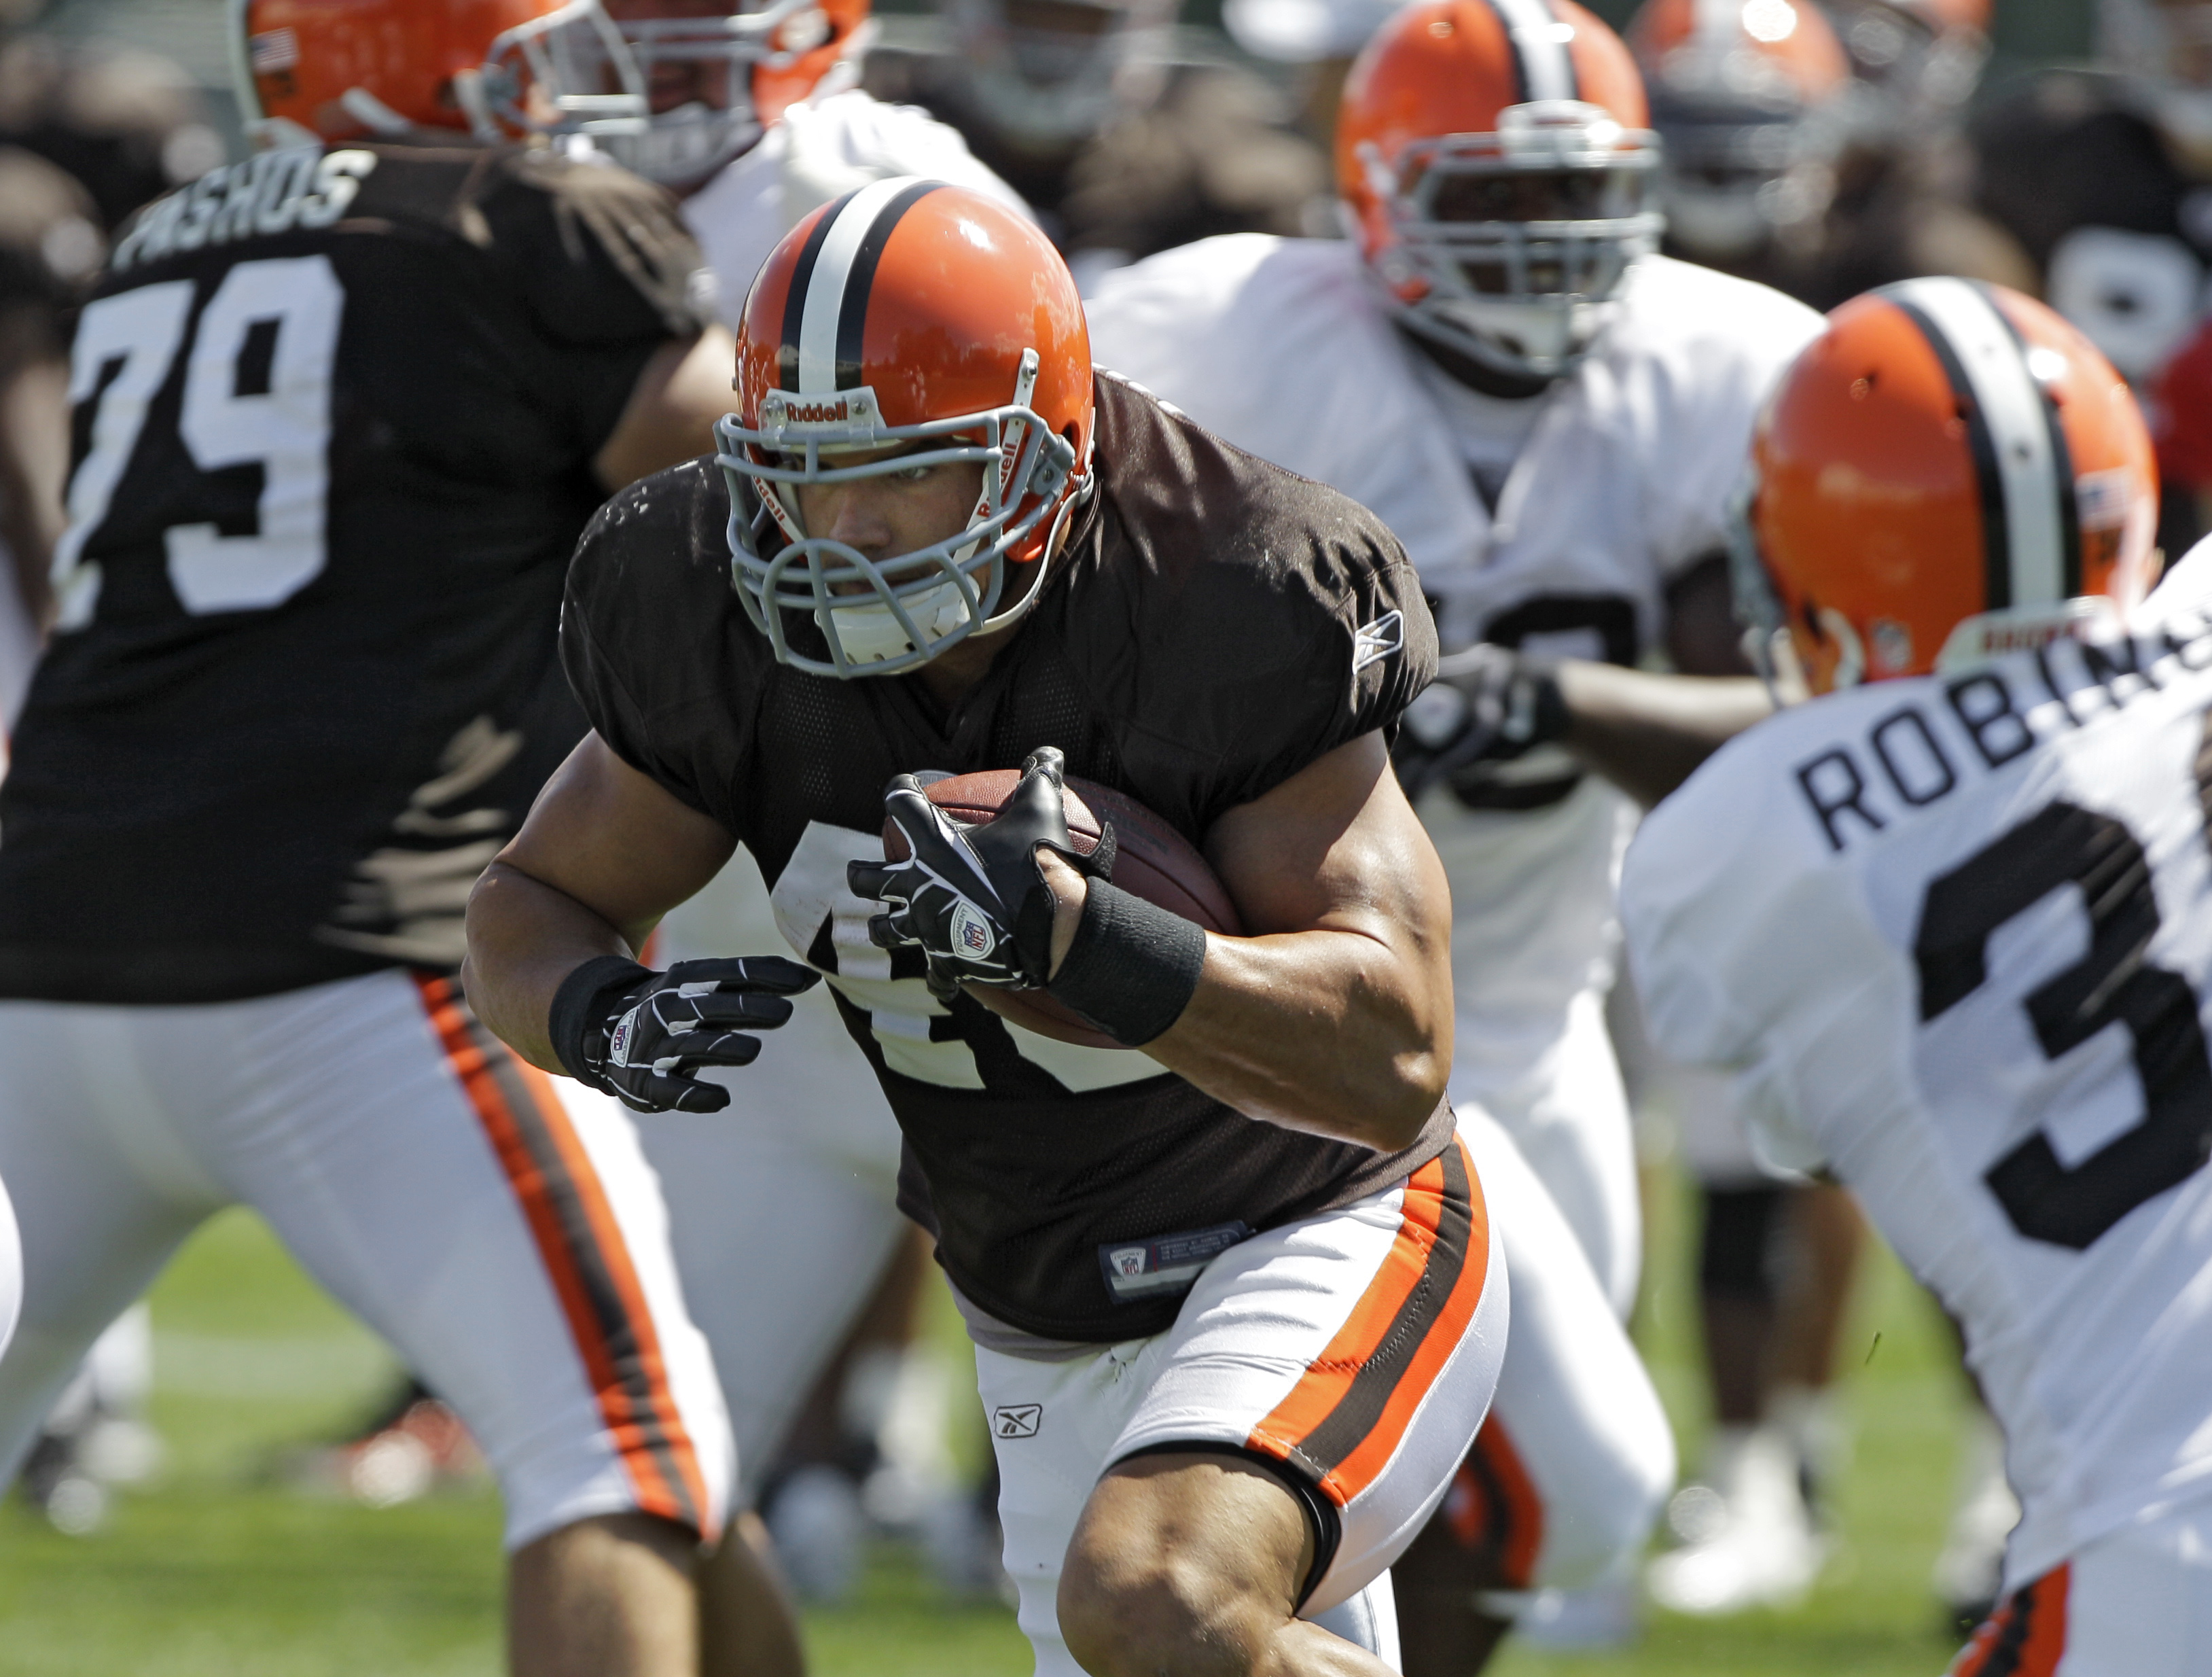 On The Cover Browns Running Back Peyton Hillis Hands Out